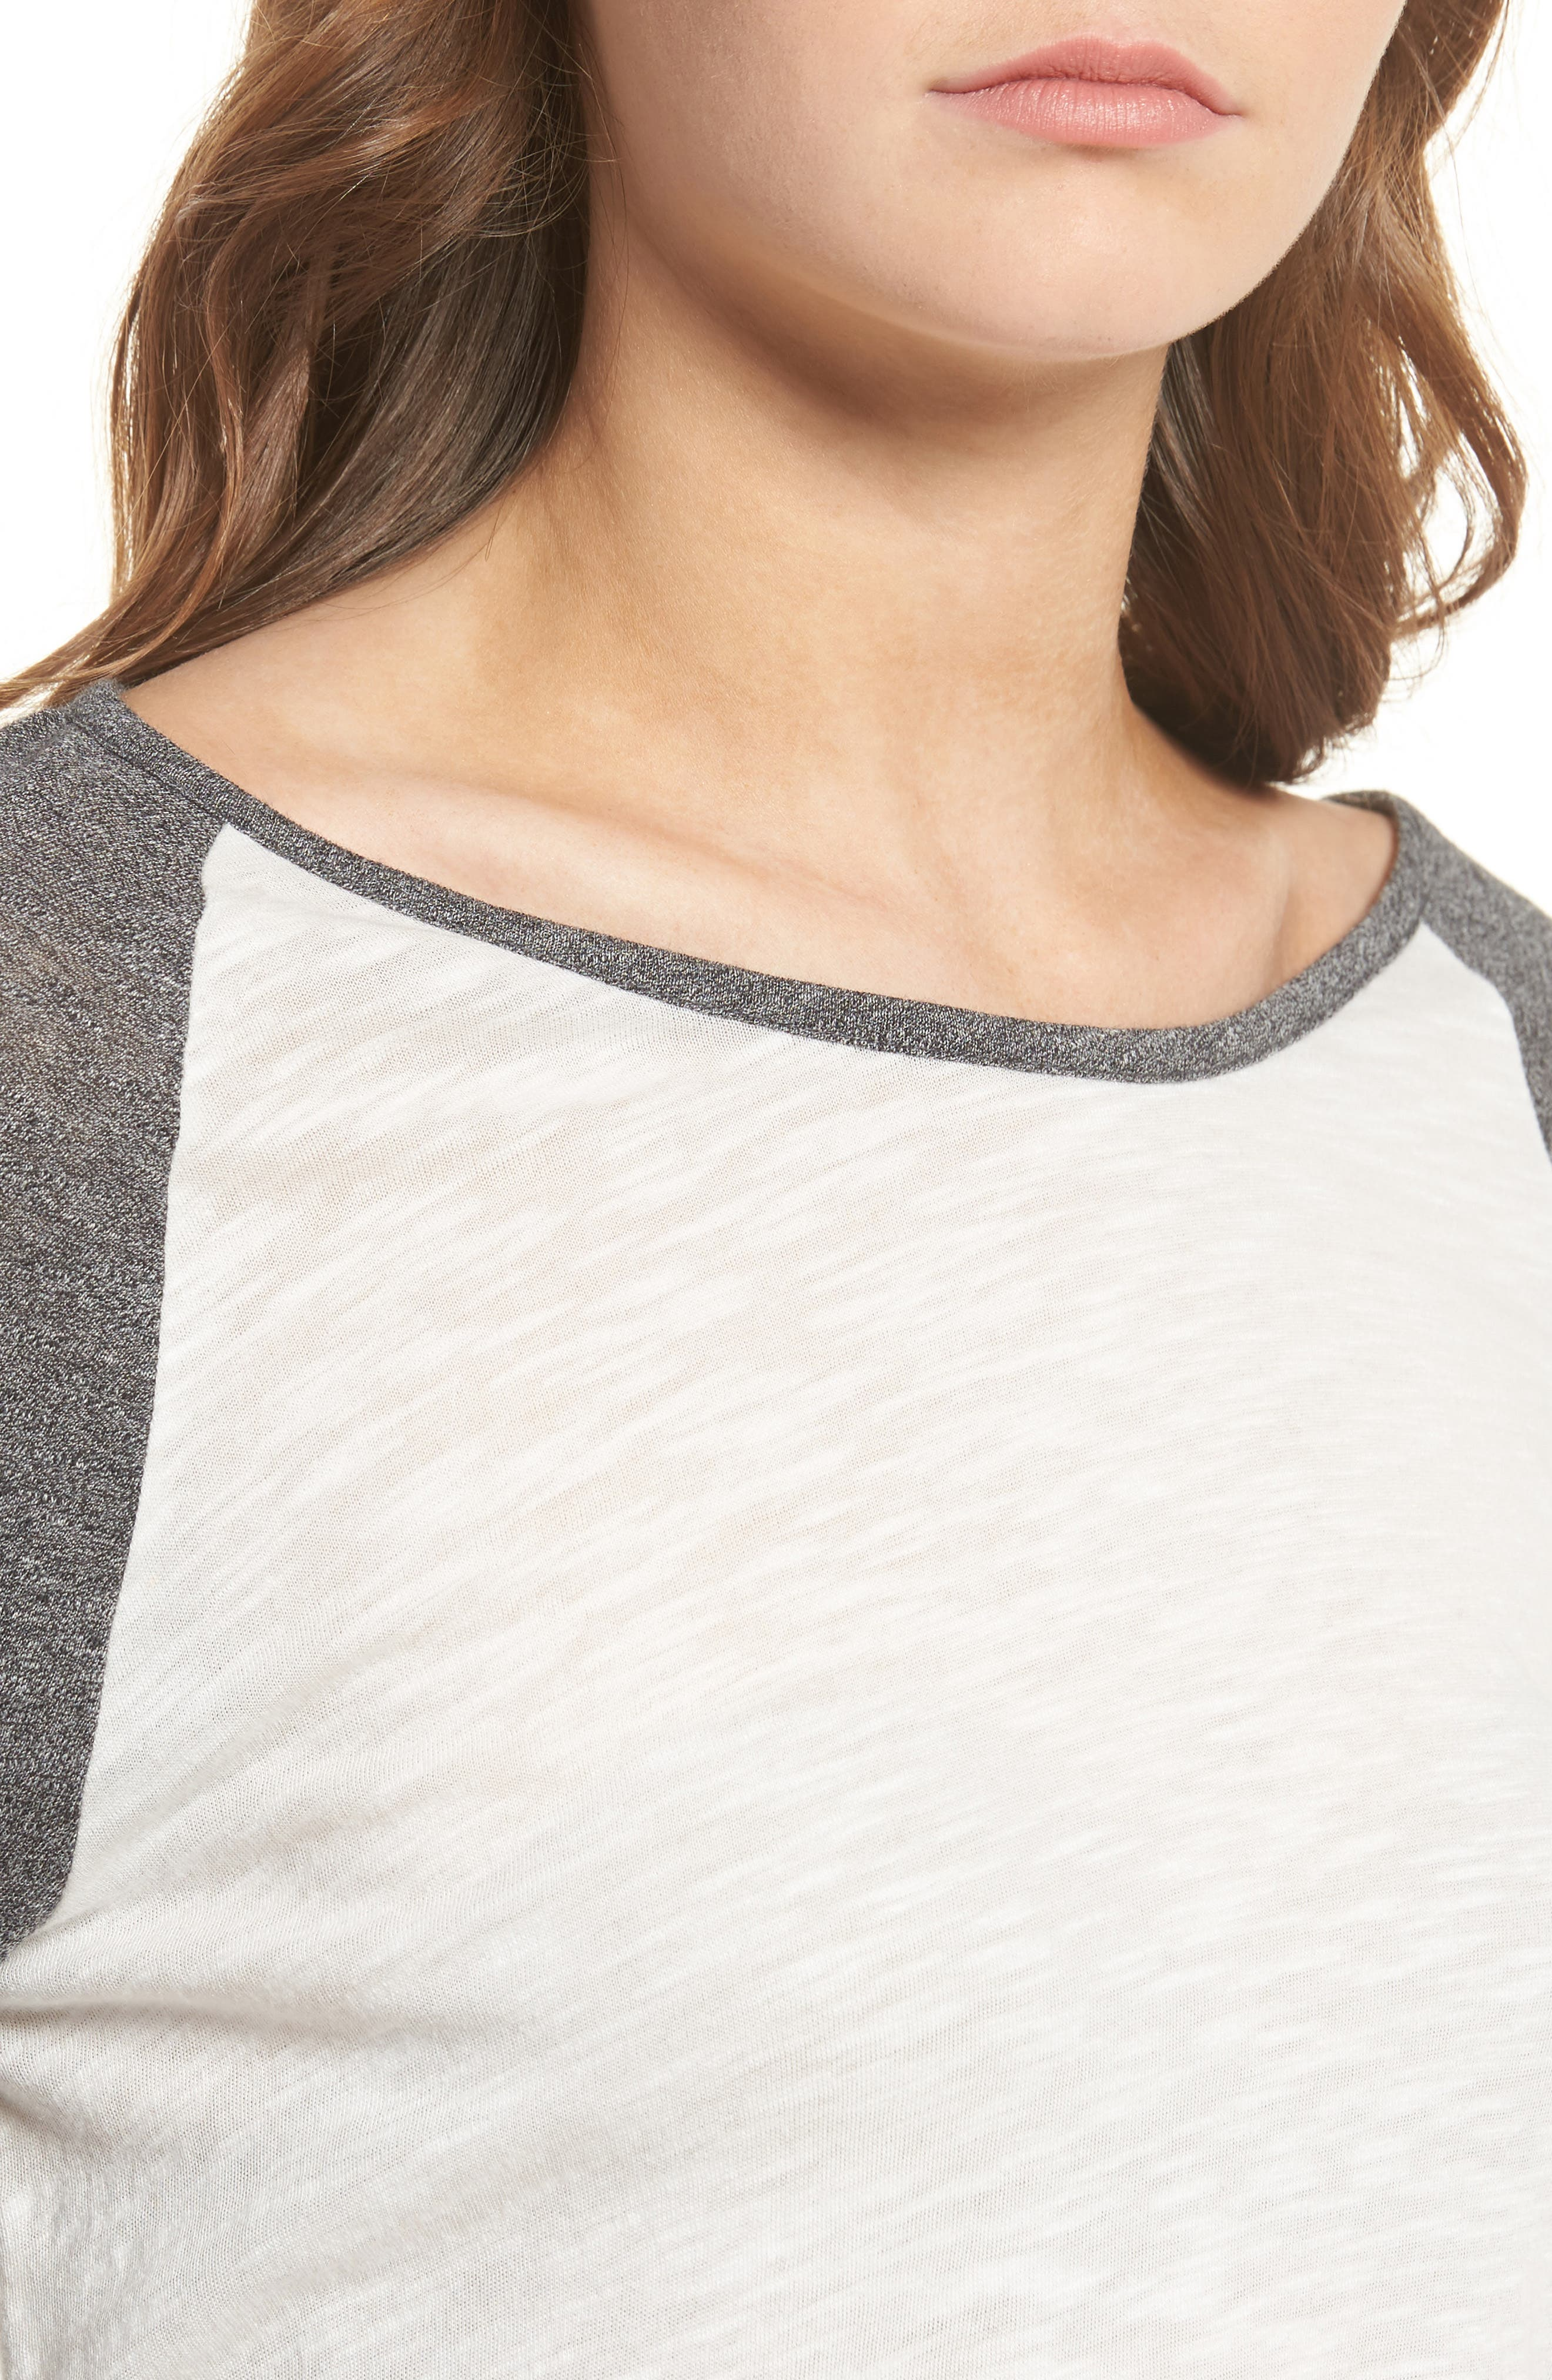 MADEWELL,                             Baseball Tee,                             Alternate thumbnail 4, color,                             021